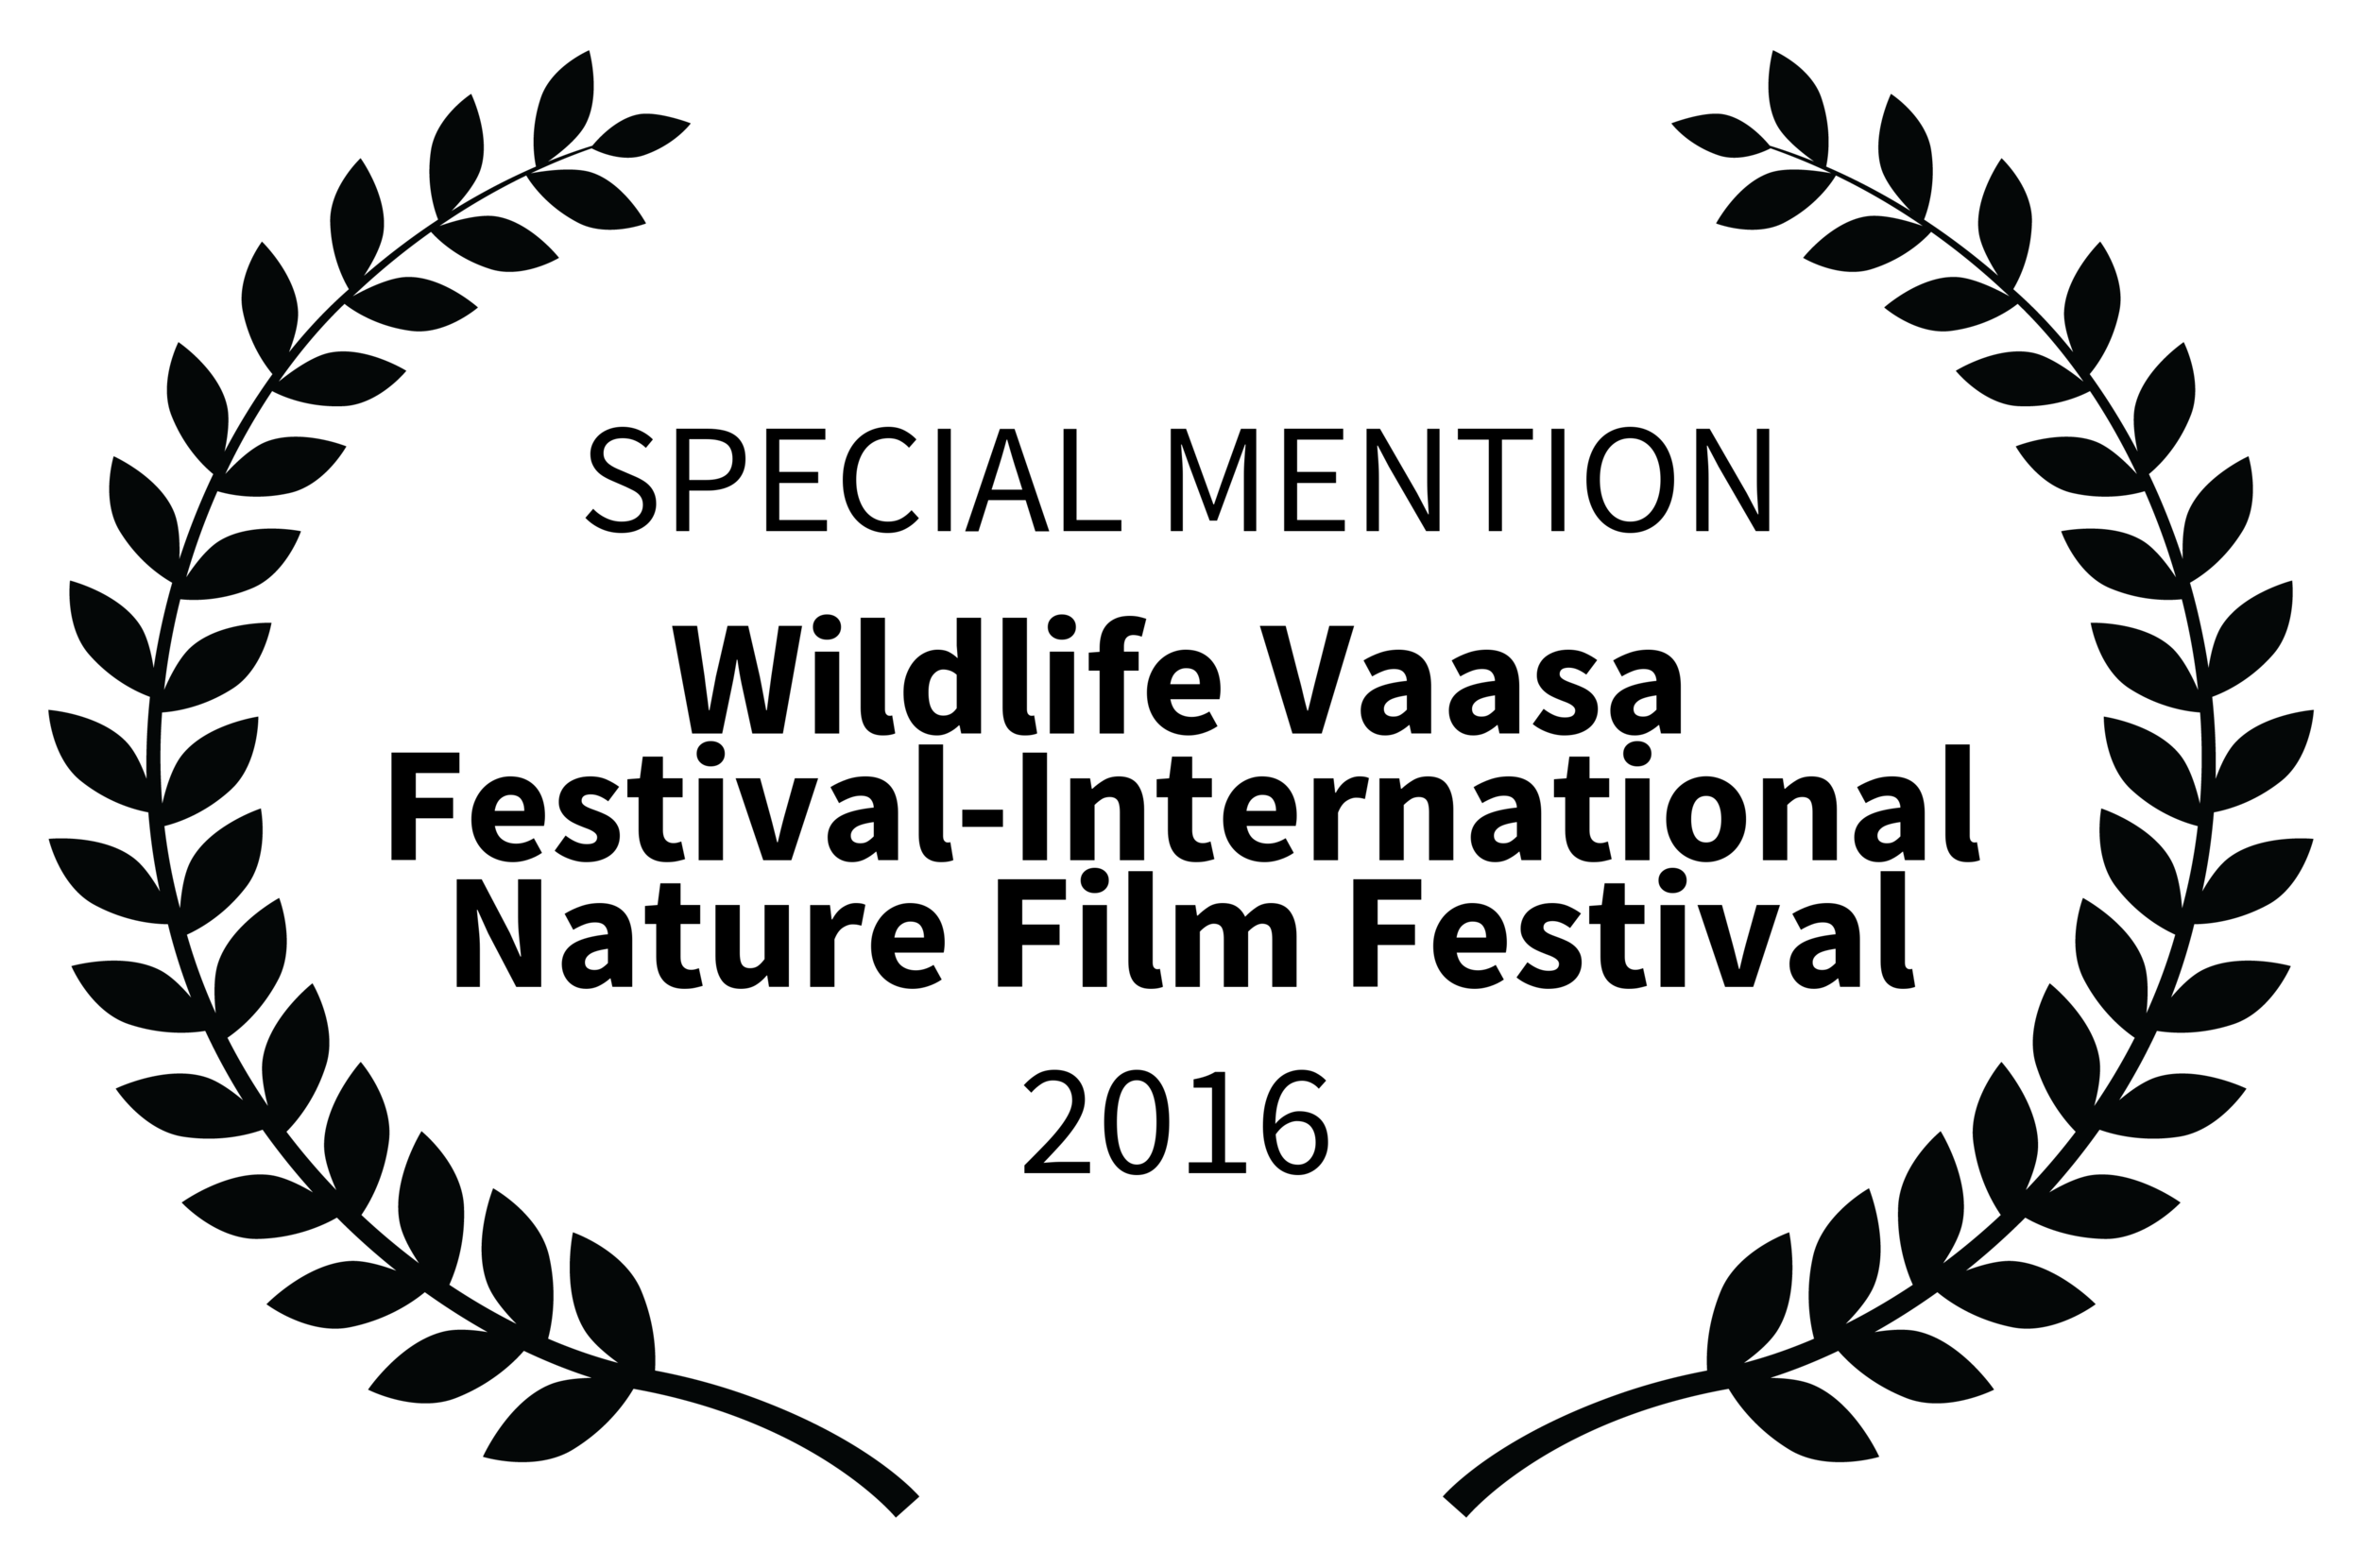 SPECIALMENTION-WildlifeVaasaFestival-InternationalNatureFilmFestival-2016.png